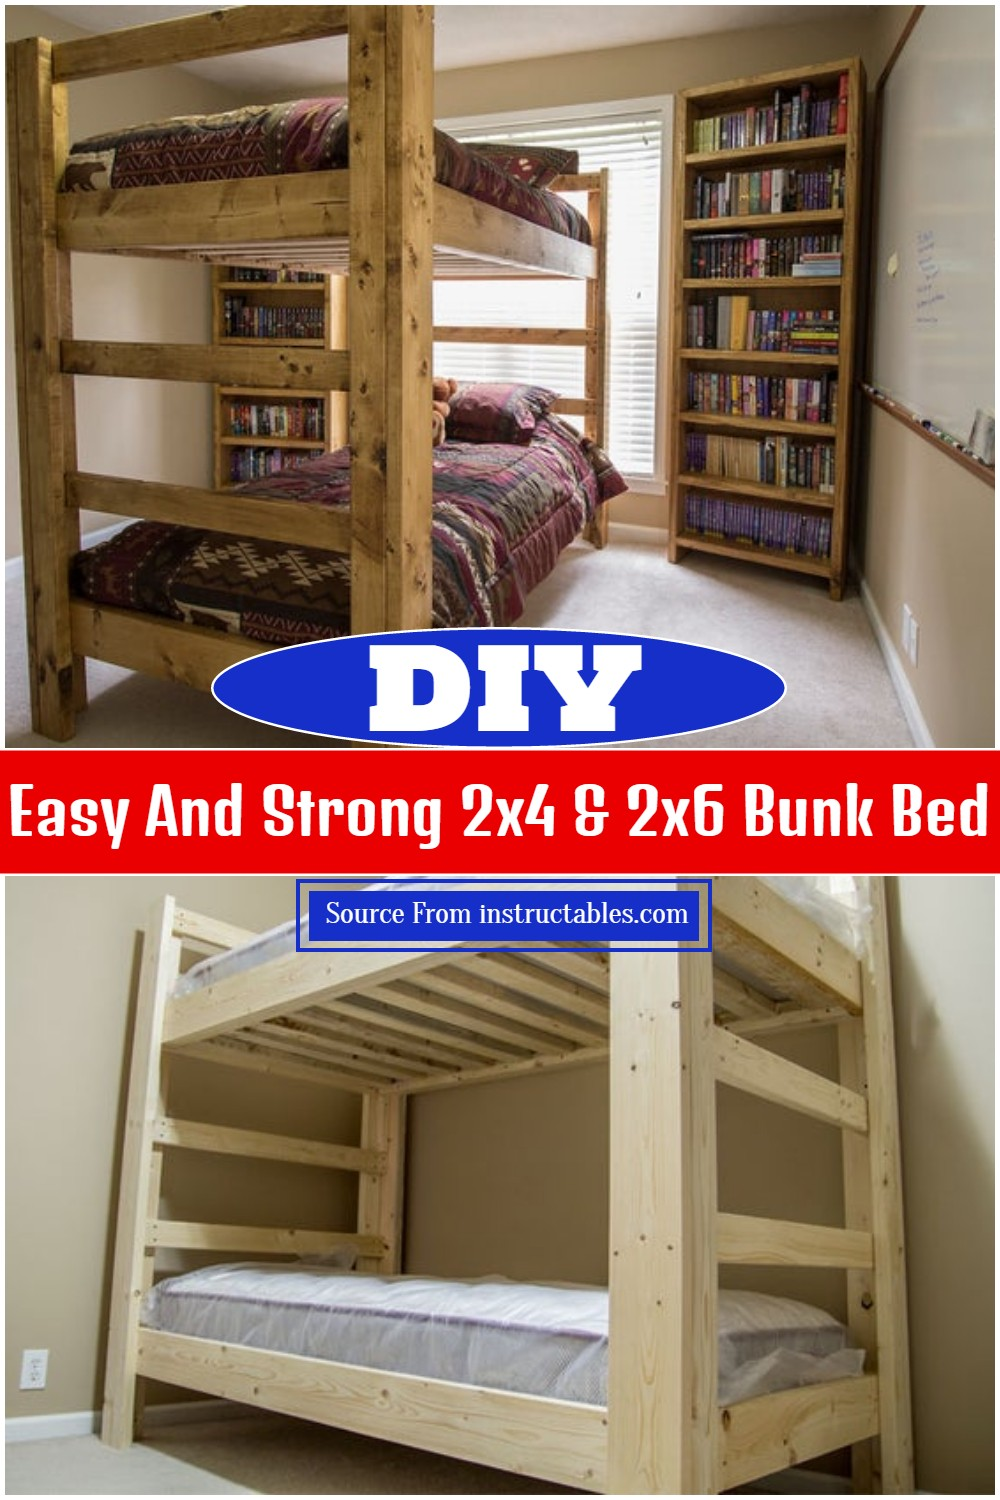 DIY Easy And Strong 2x4 & 2x6 Bunk Bed